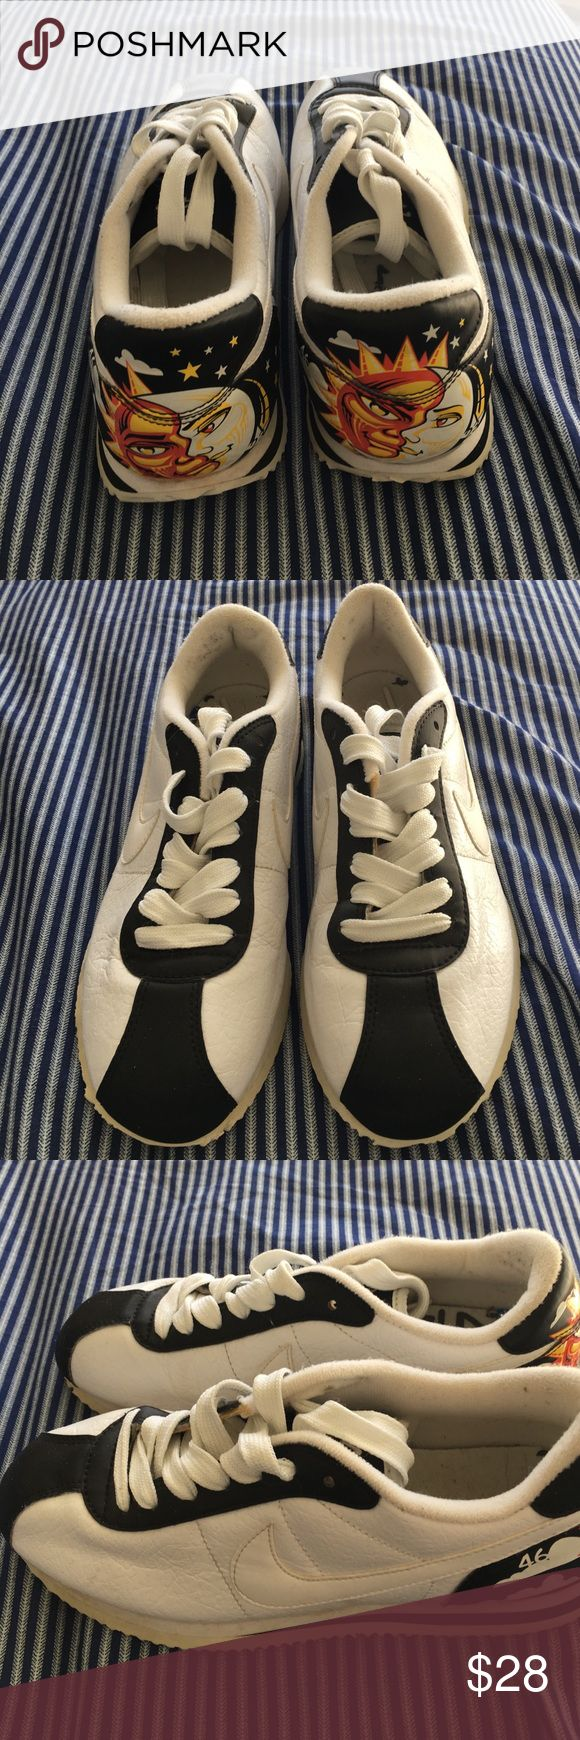 Nike Cortez Sun/Moon Kids 5Y Excellent gently used condition white Nikes with sun and moon design on heel. These were barely worn by my daughter because she didn't like them. Size is 5Y which is big kids and will fit women but I'm not sure which size. Nike Shoes Sneakers